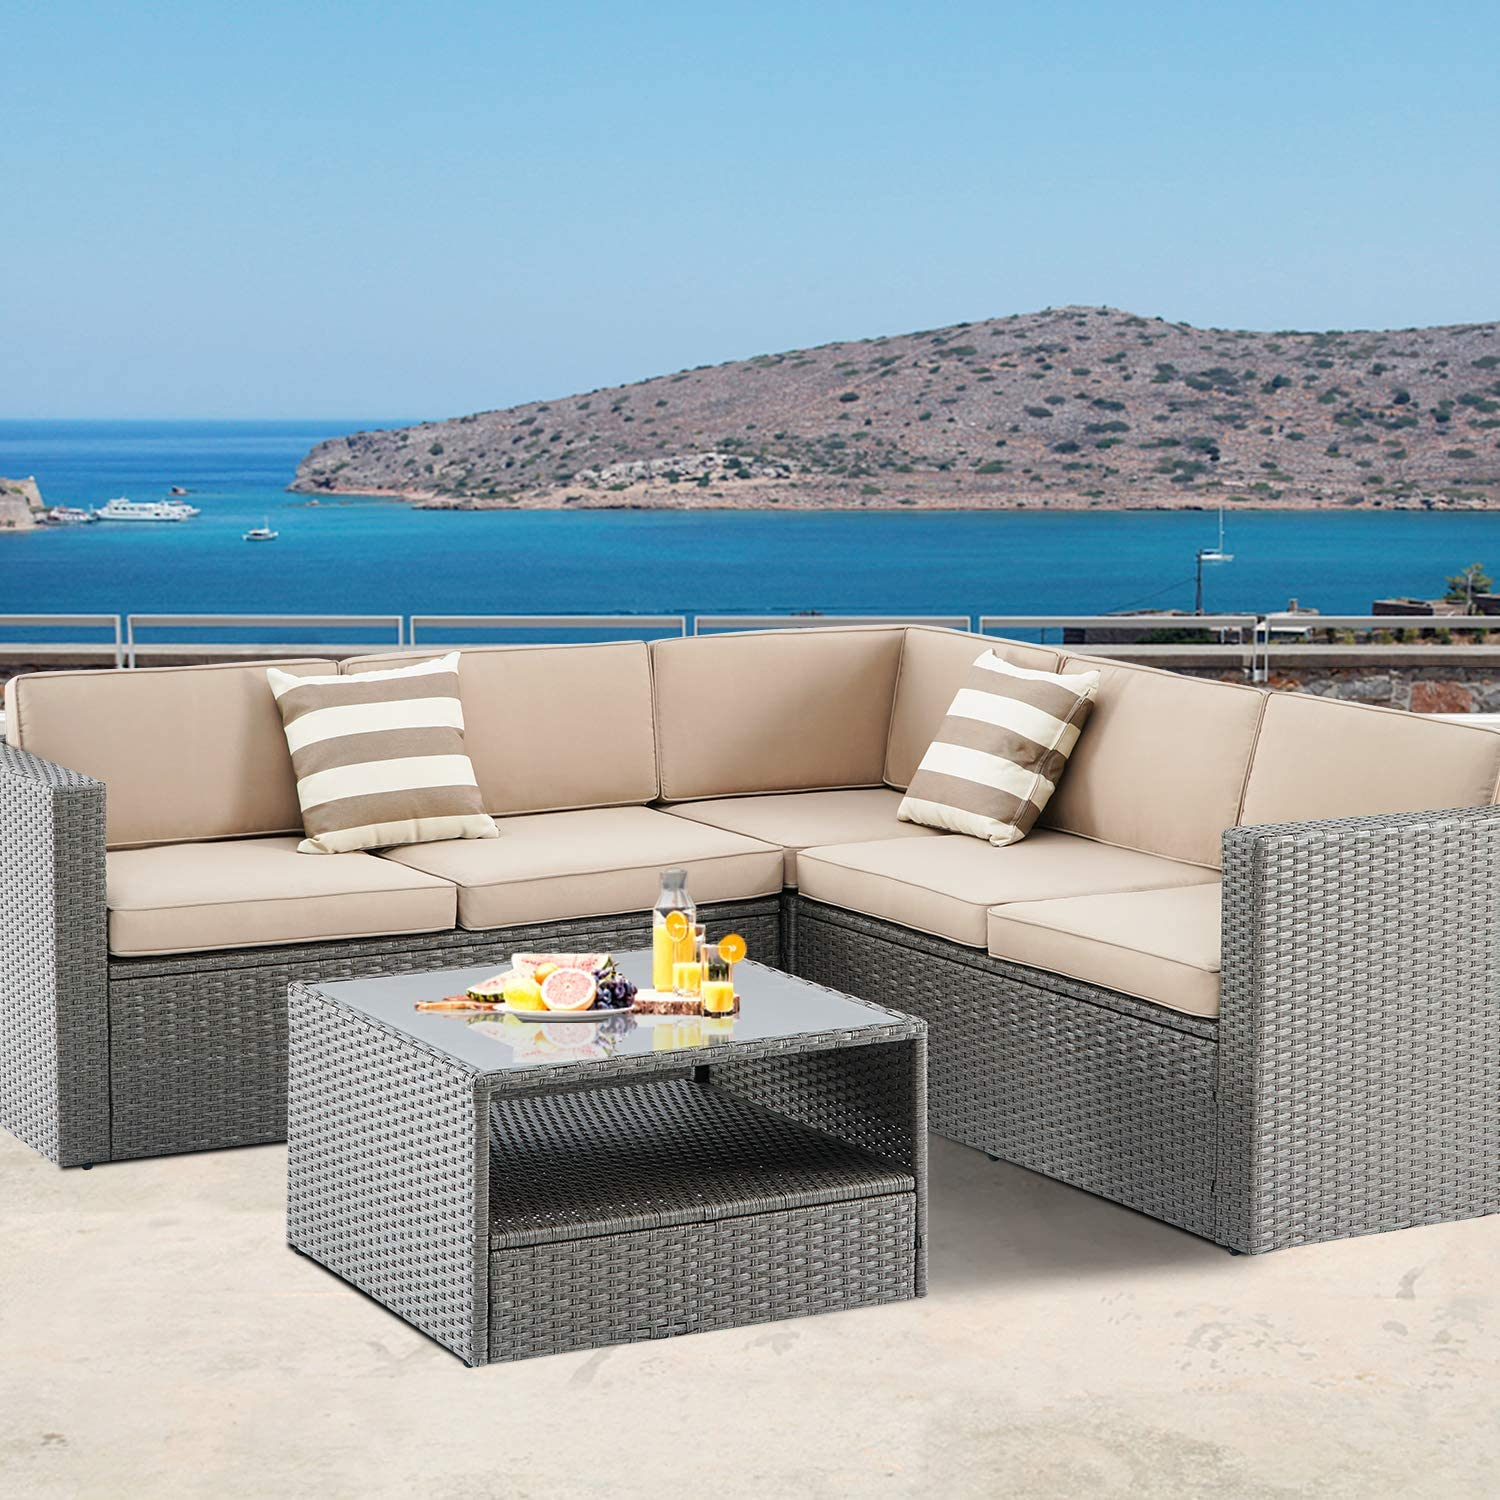 Blue SUNCROWN Outdoor 4-Piece Furniture Sectional Sofa Set All Weather Grey Wicker with Washable Seat Cushions and Modern Glass Coffee Table